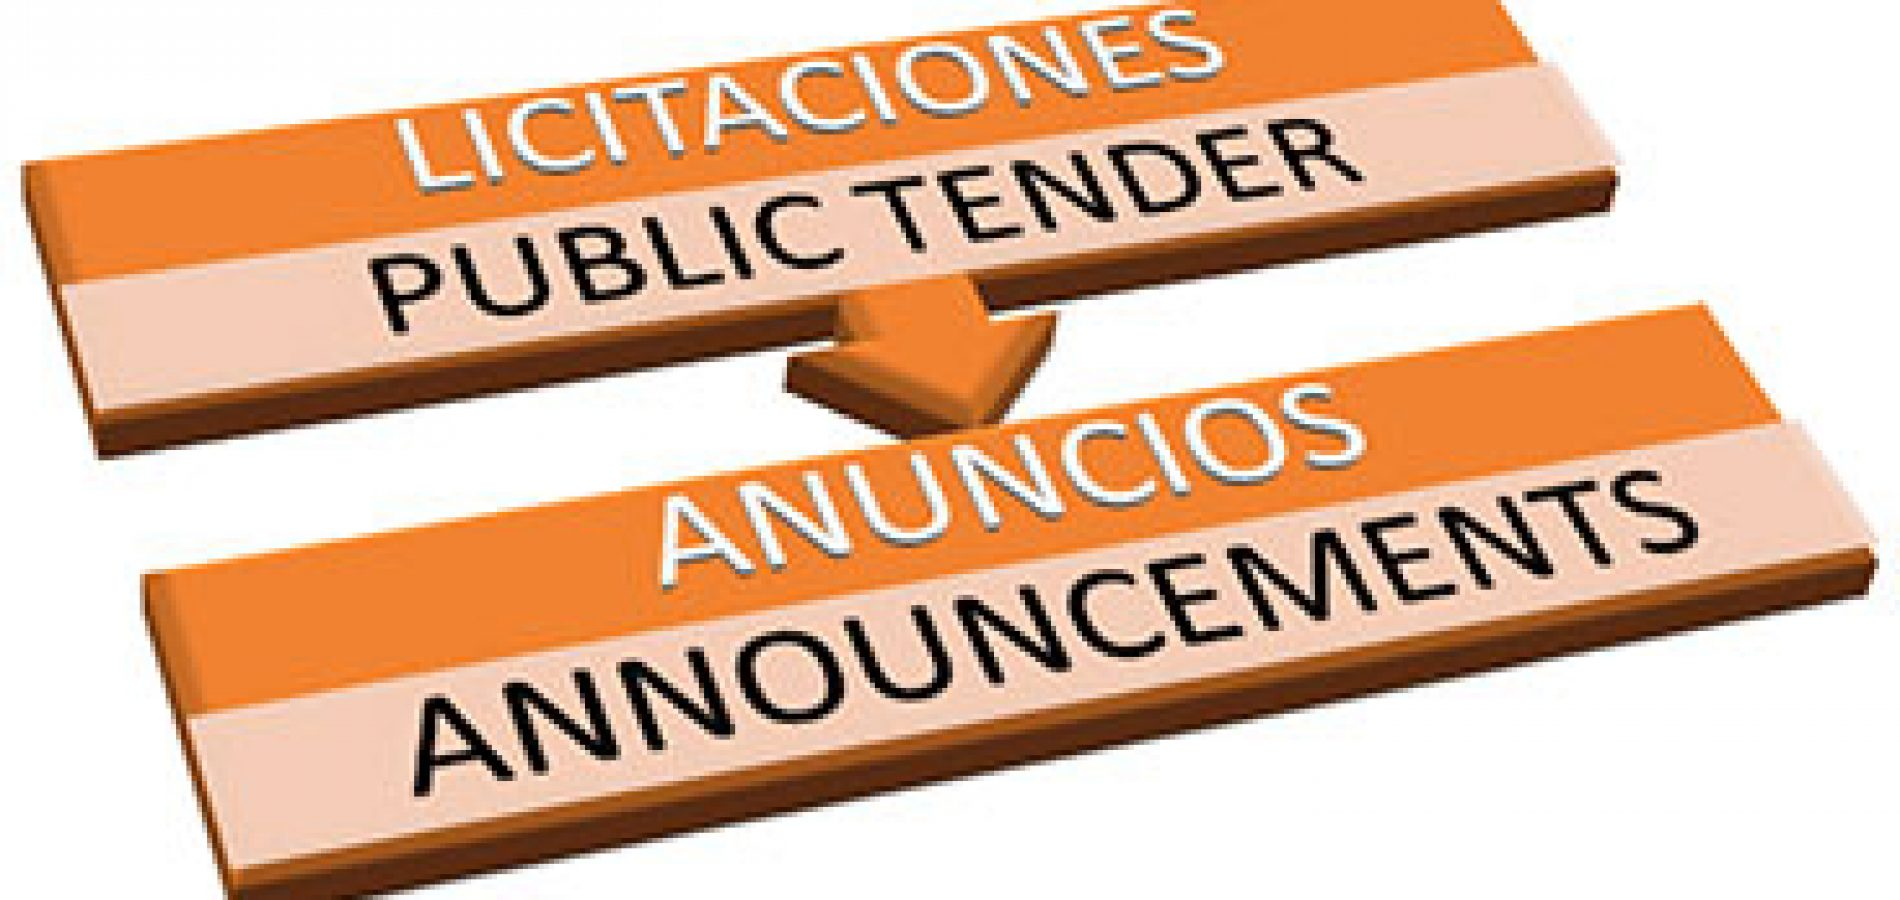 Public tenders and announcements